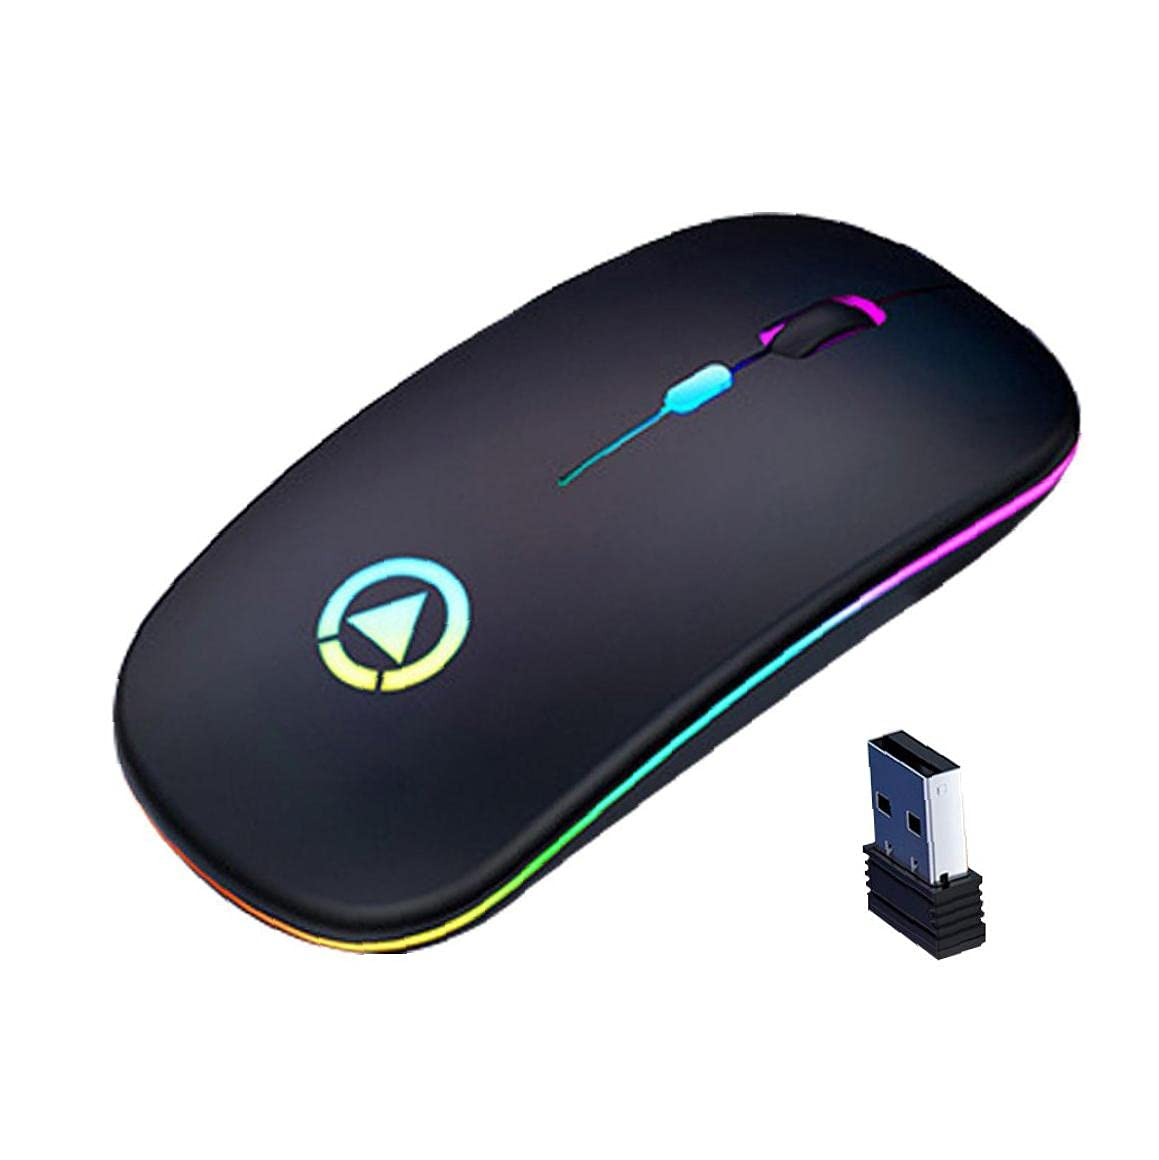 Wireless Mouse Bluetooth Gaming Re Optical 55% OFF USB A2 Ranking TOP13